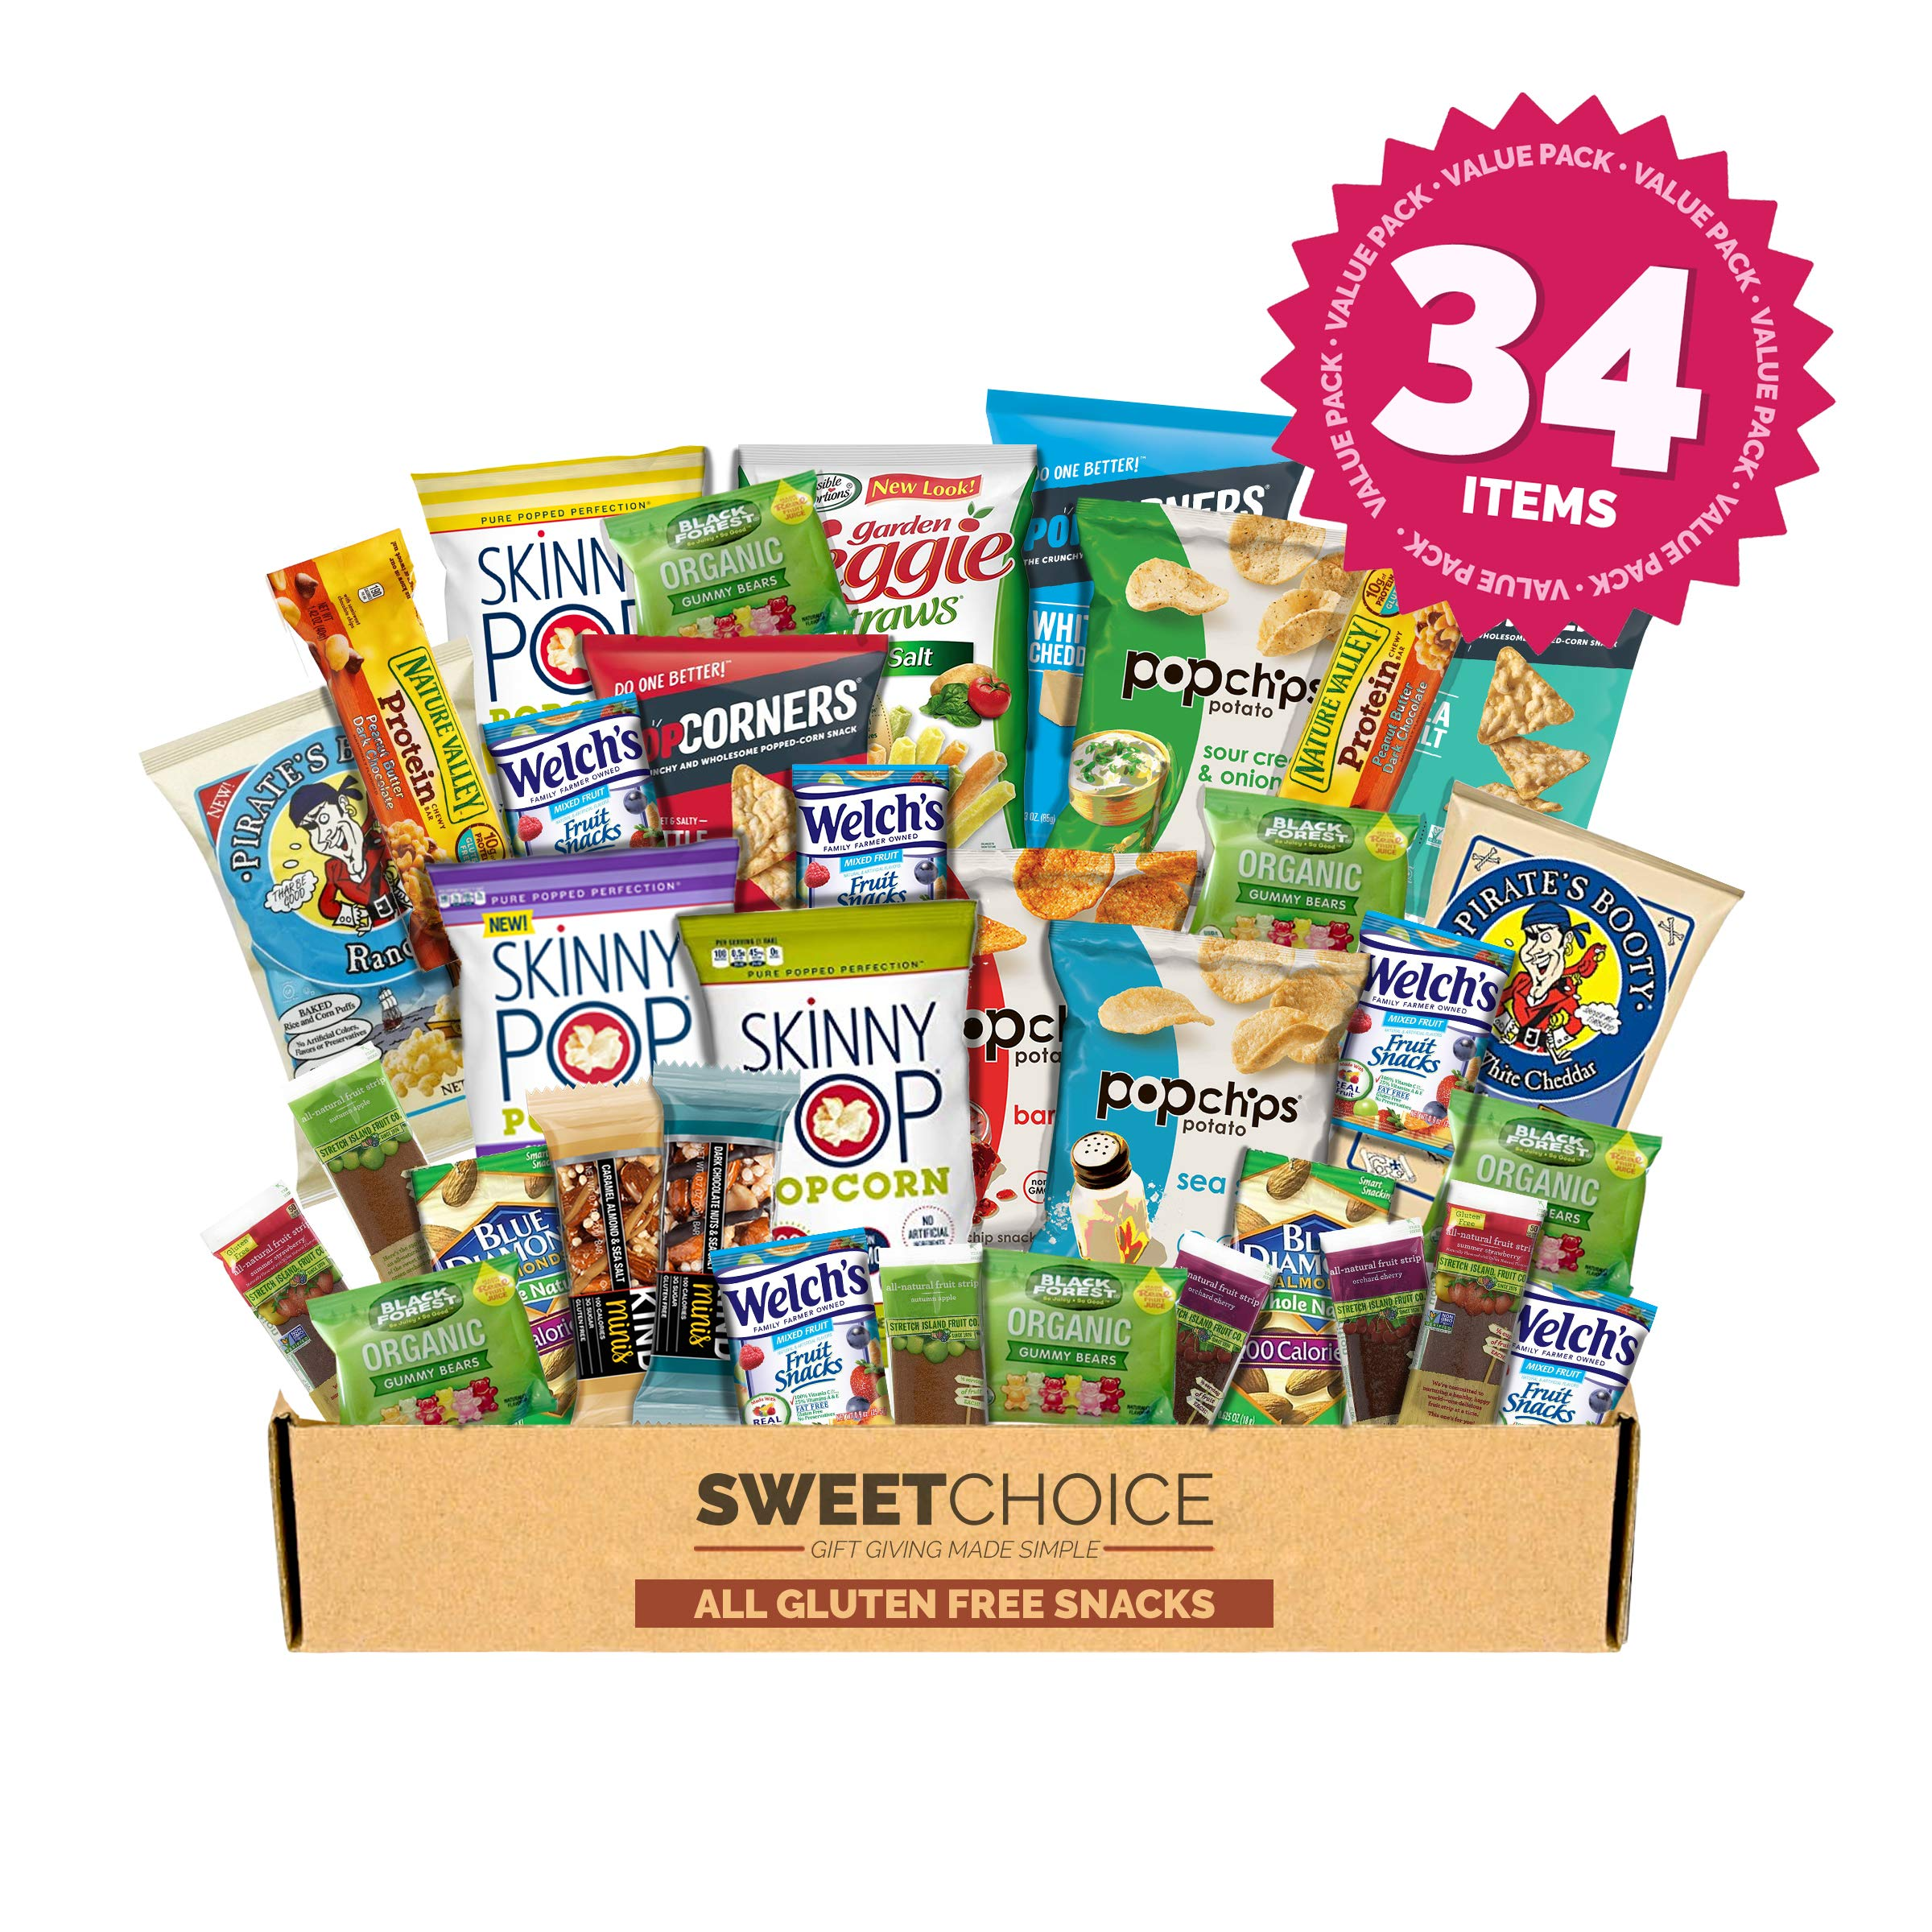 Snack Box Gluten Free Healthy Snacks Care Package (34 Count) for College Students, Exams, Father's Day, Military, Finals, Office and Gift Ideas. Chips, Popcorn, and granola Bars. by Sweet Choice